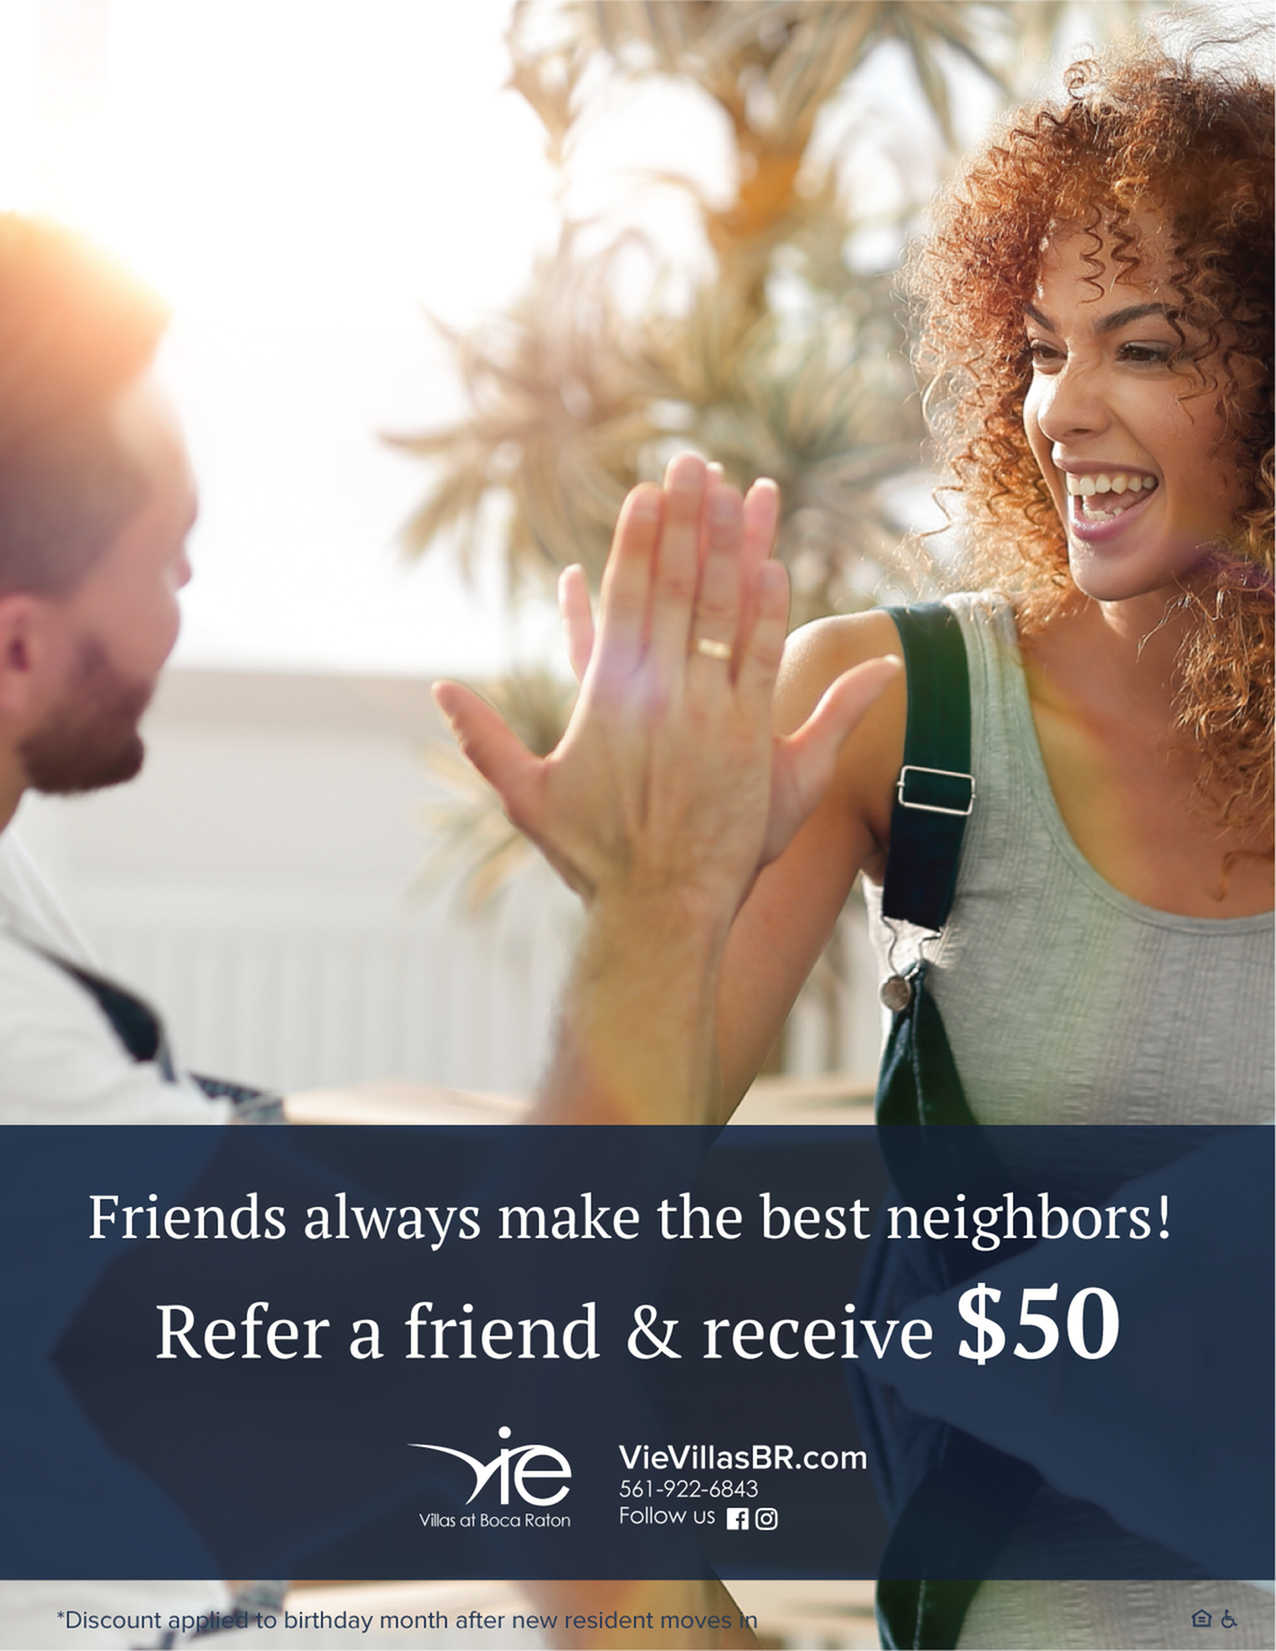 Refer a Friend to Get $50-image